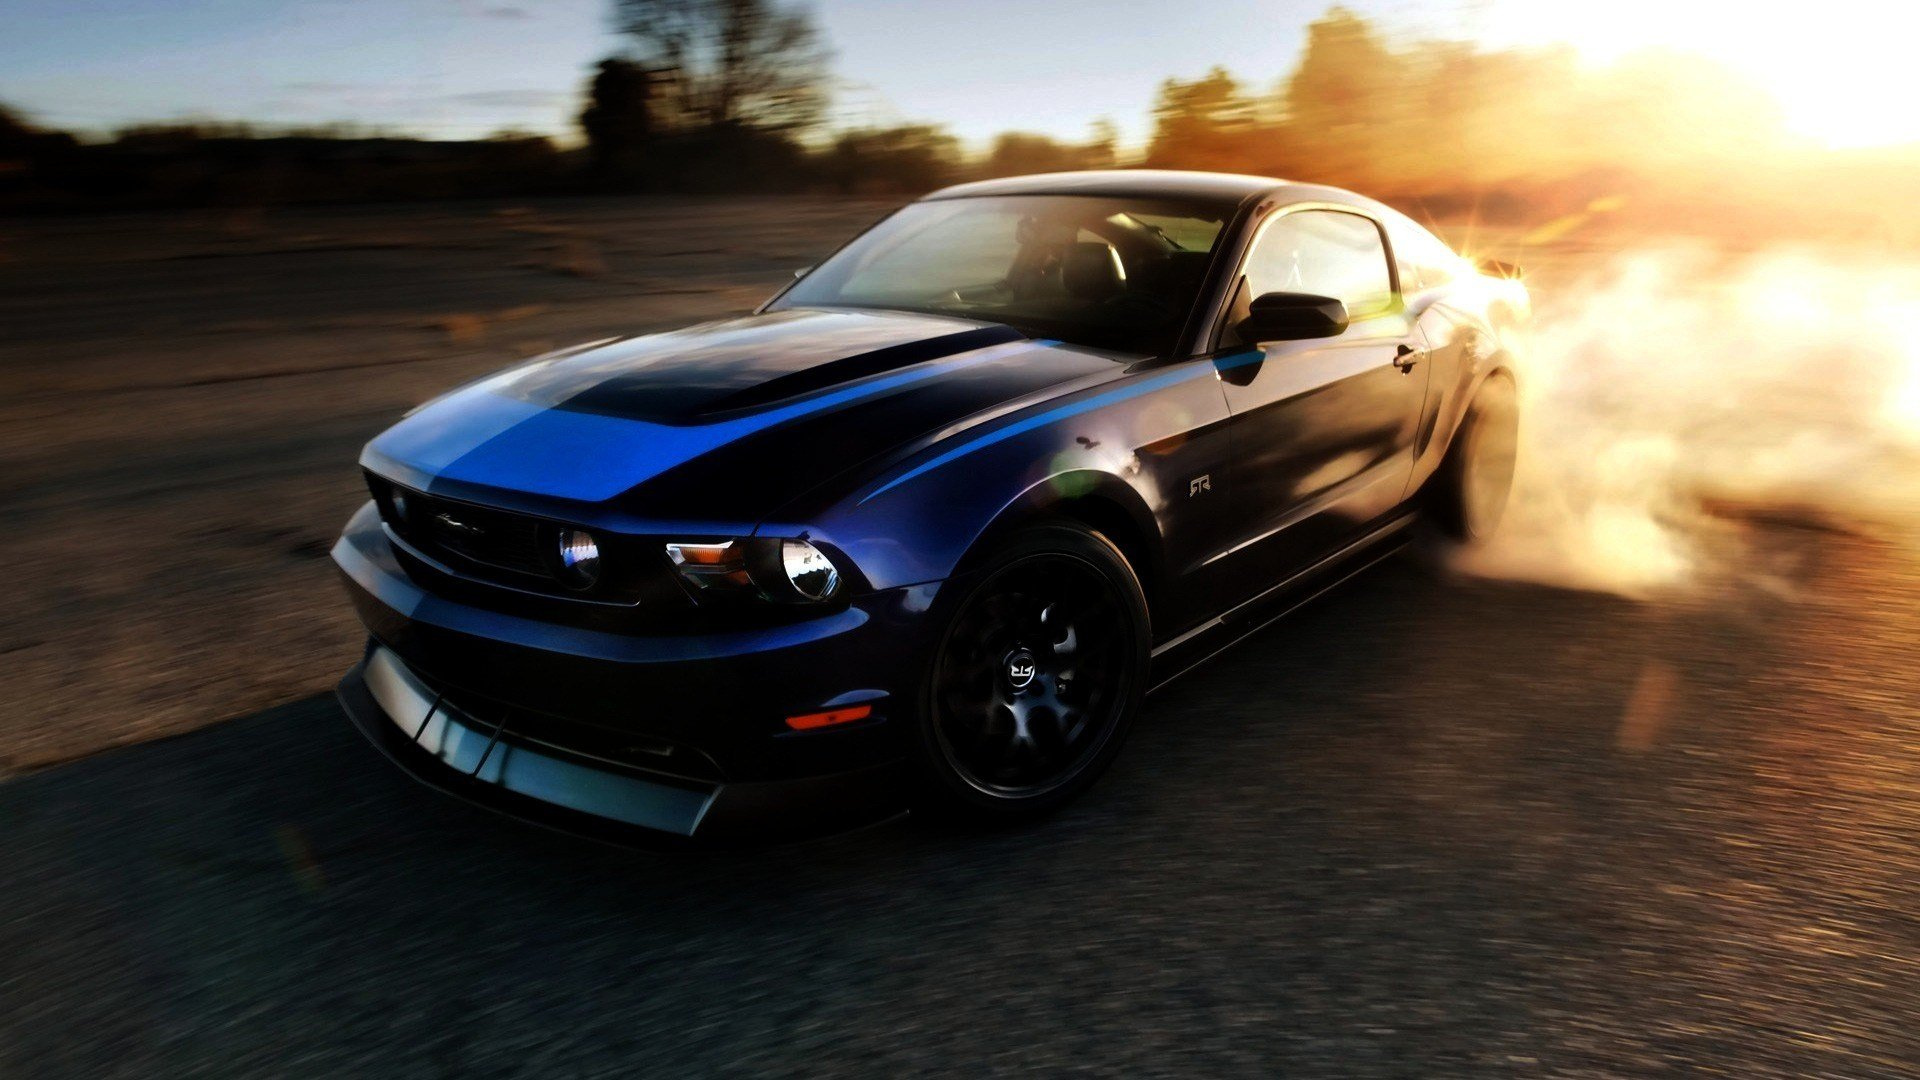 Latest 30 Hd Mustang Wallpapers For Free Download